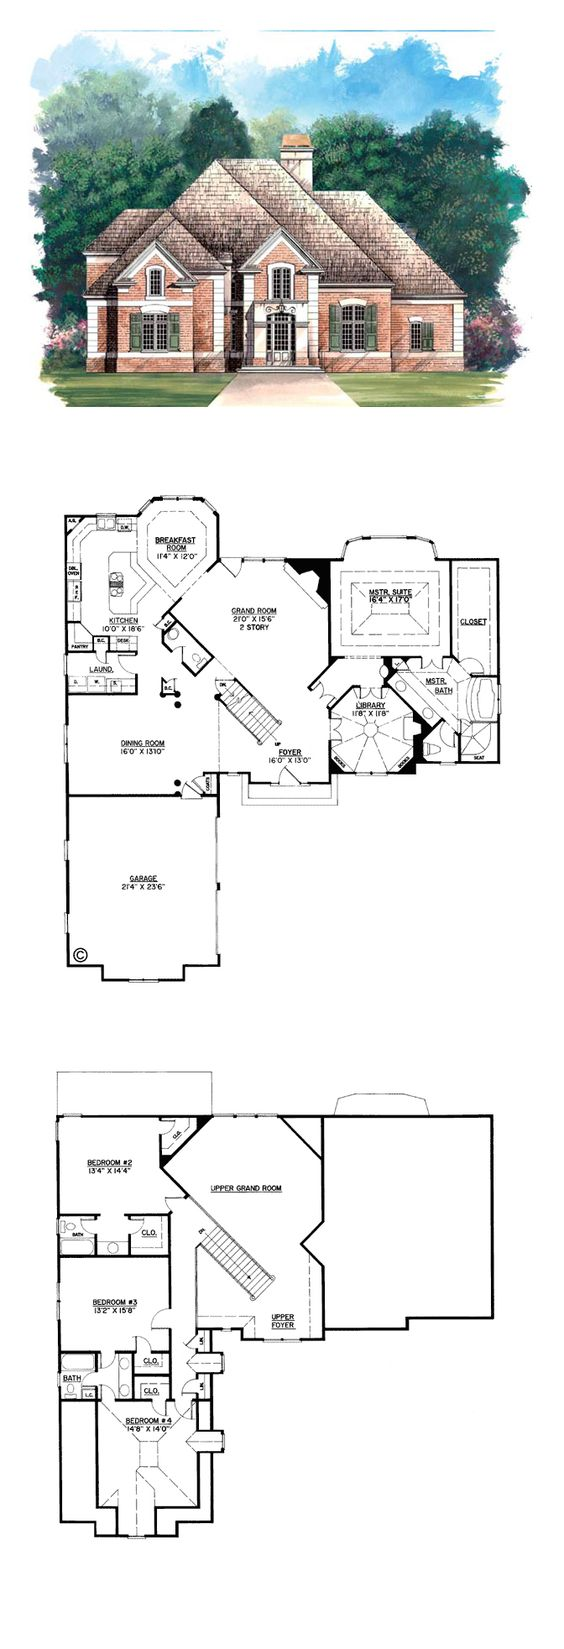 European greek revival house plan 98205 house plans for Greek revival floor plans